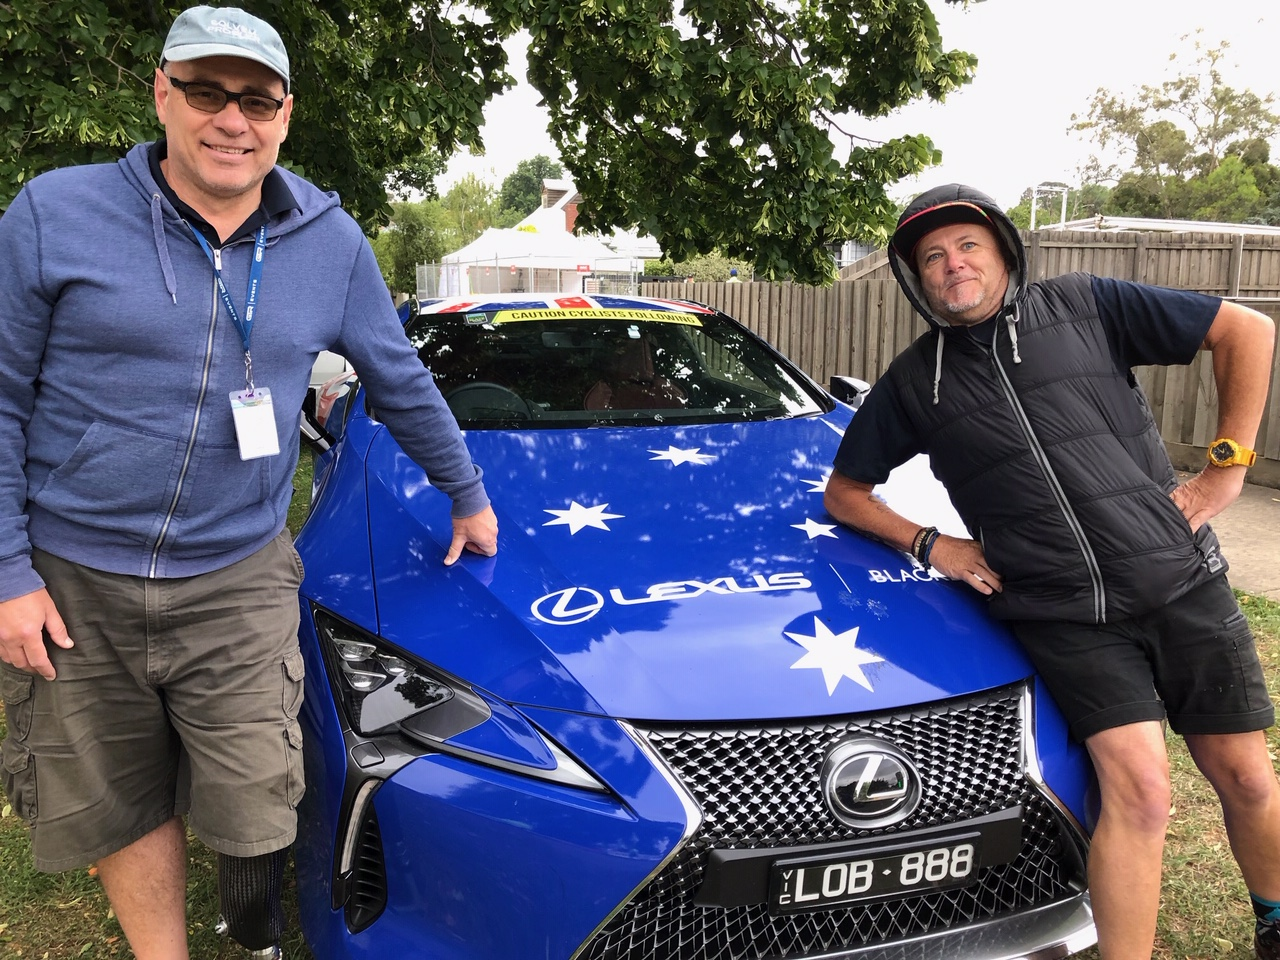 CA National Elite Road Championships @ Ballarat @ 5 Jan - Alex Simmons & Robin Tiffo frame the National Championship Lead Car before the start of the Championships at Buningyong